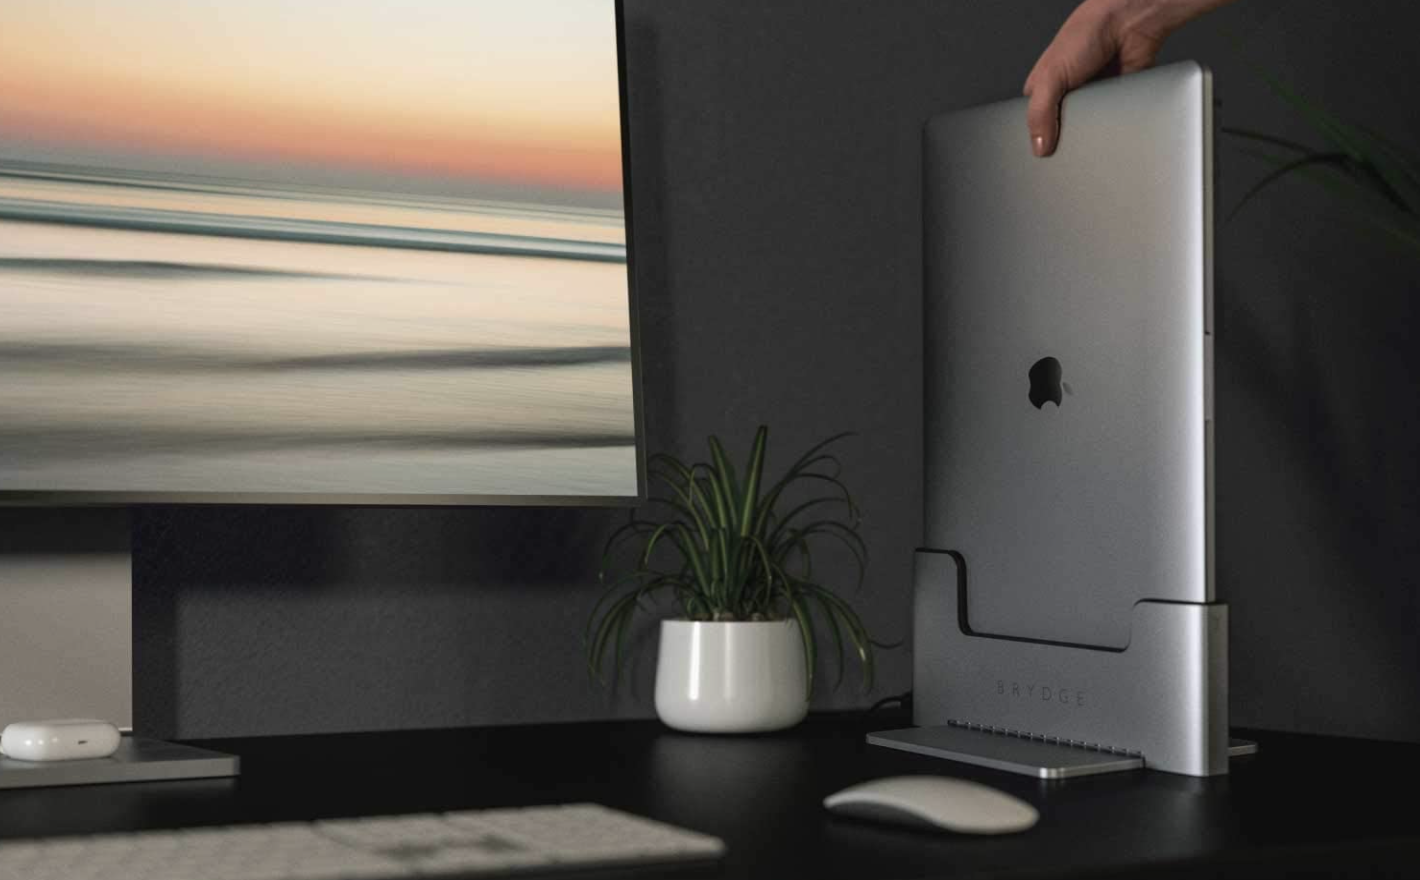 Complete your desktop setup with a stylish Brydge Vertical Dock at $20 off